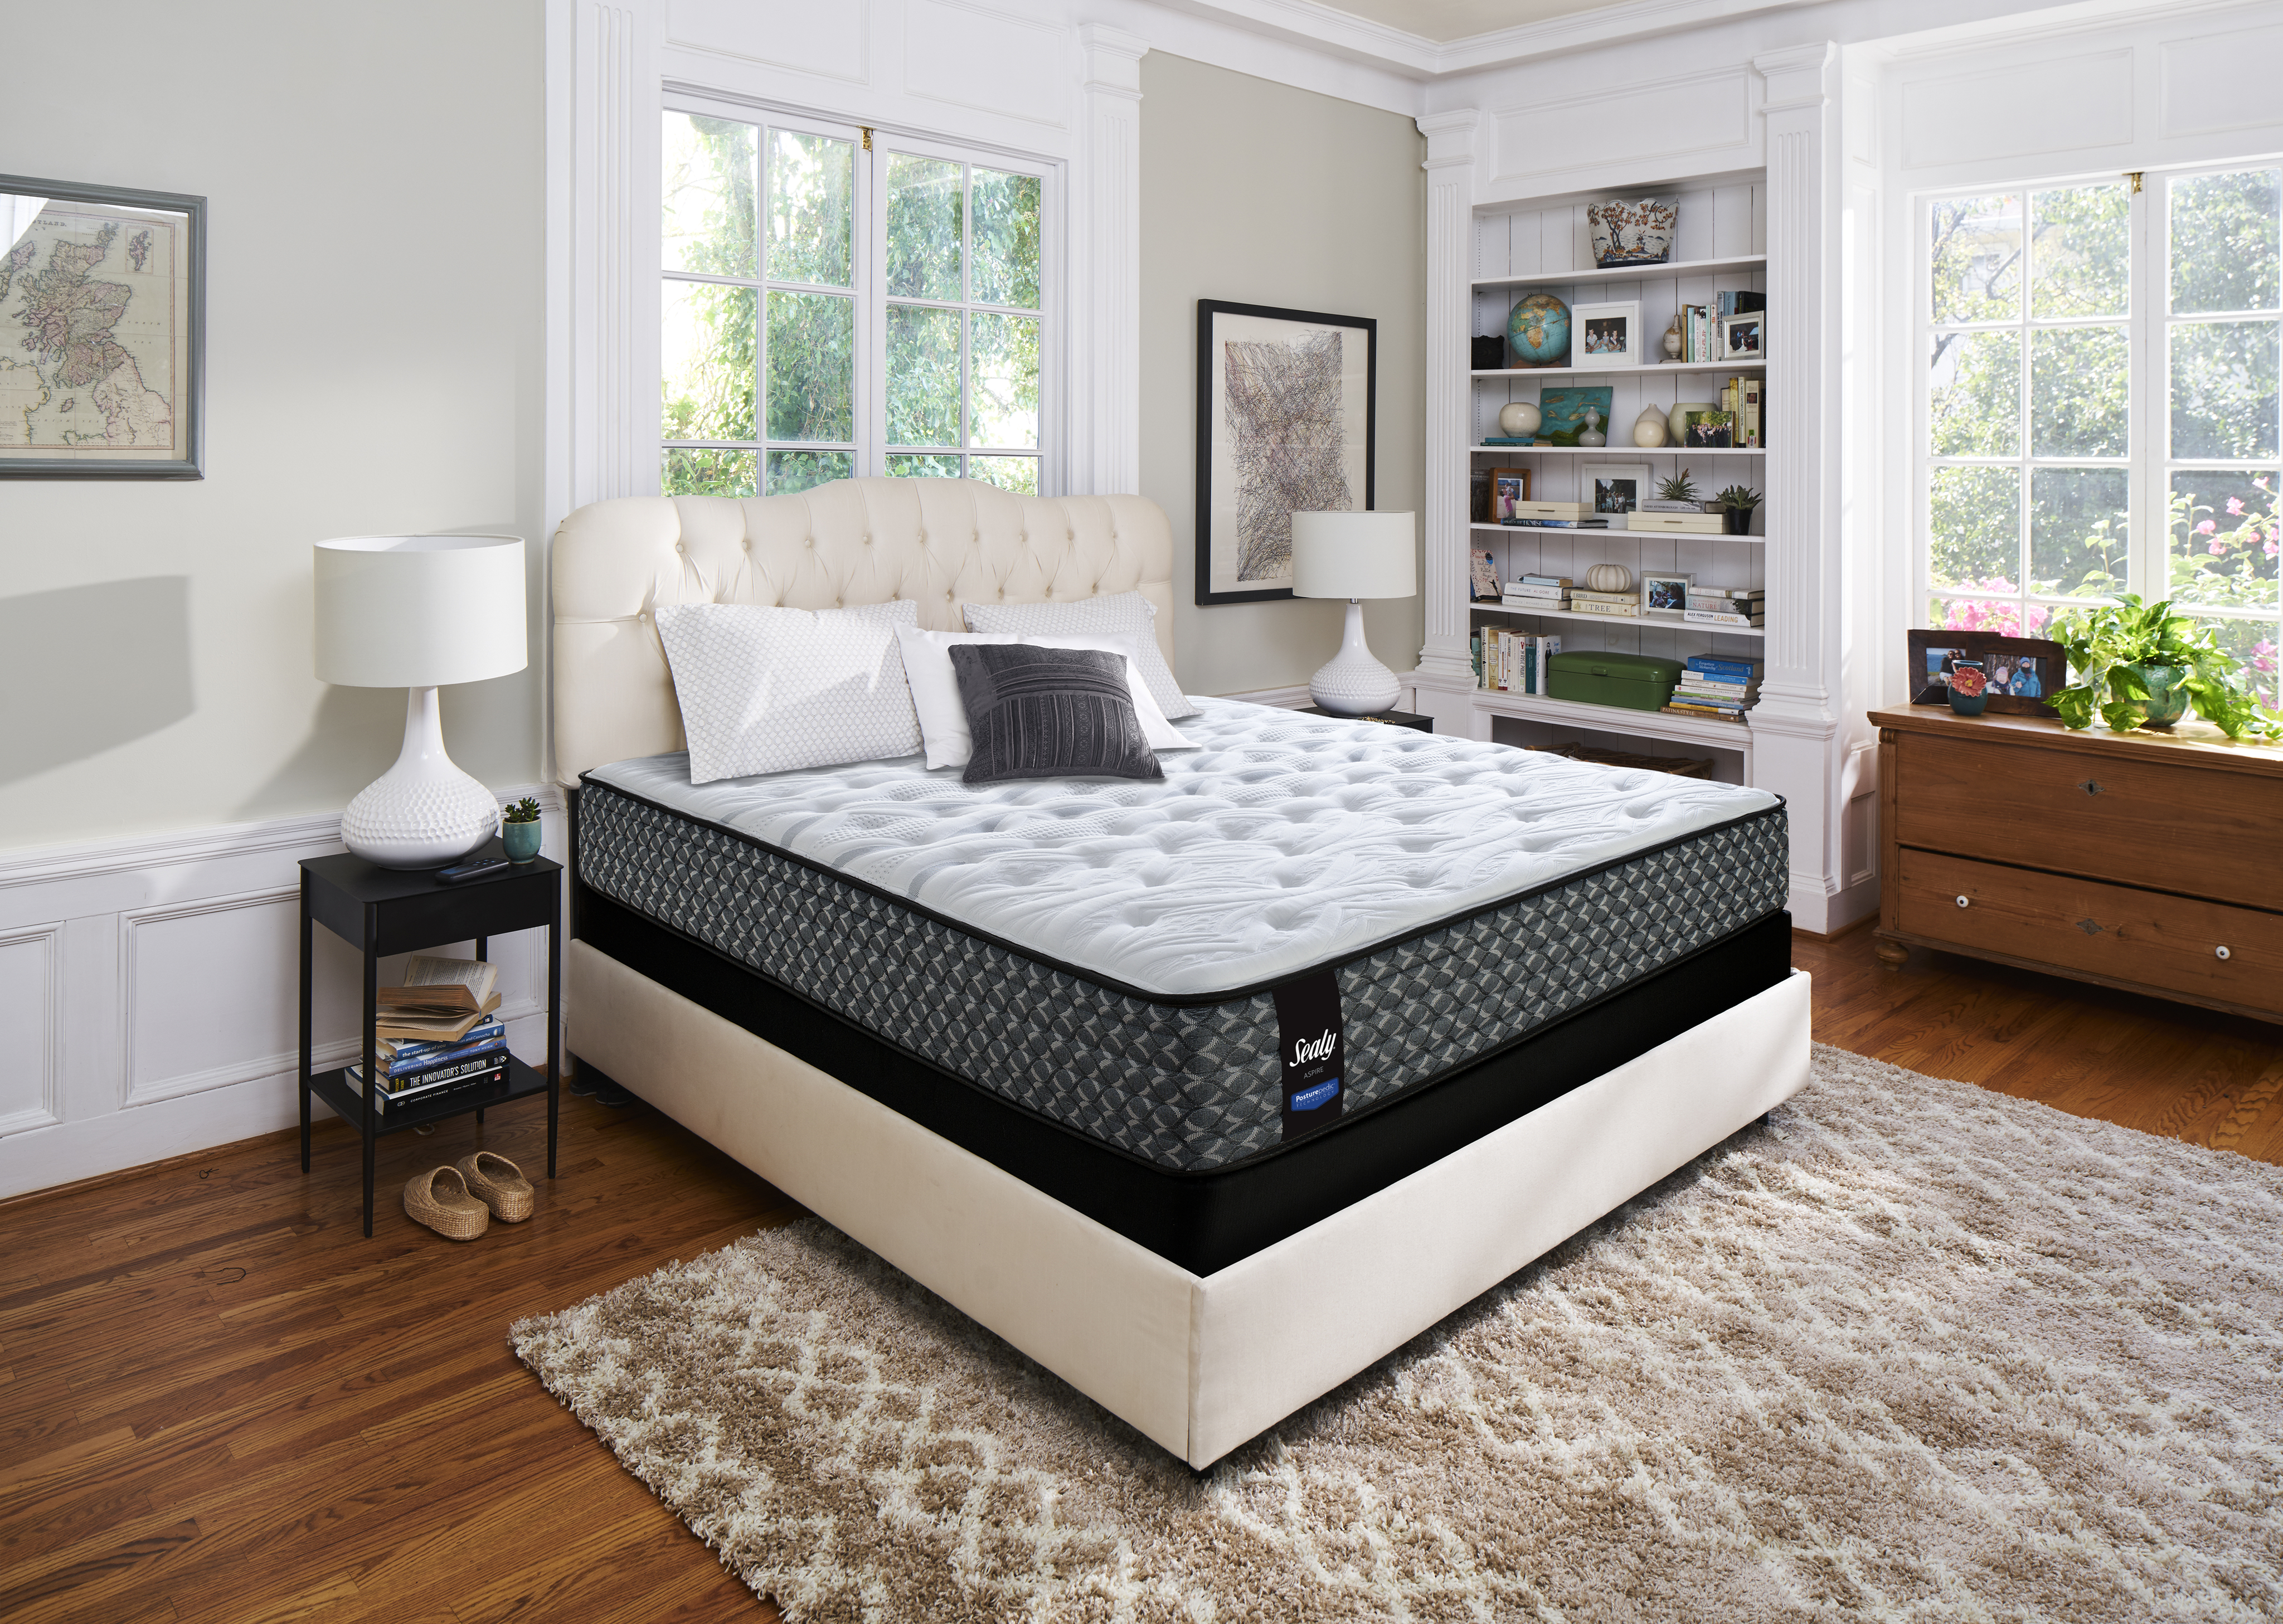 mattresses en cm image mattress sealy hybrid catalog classic